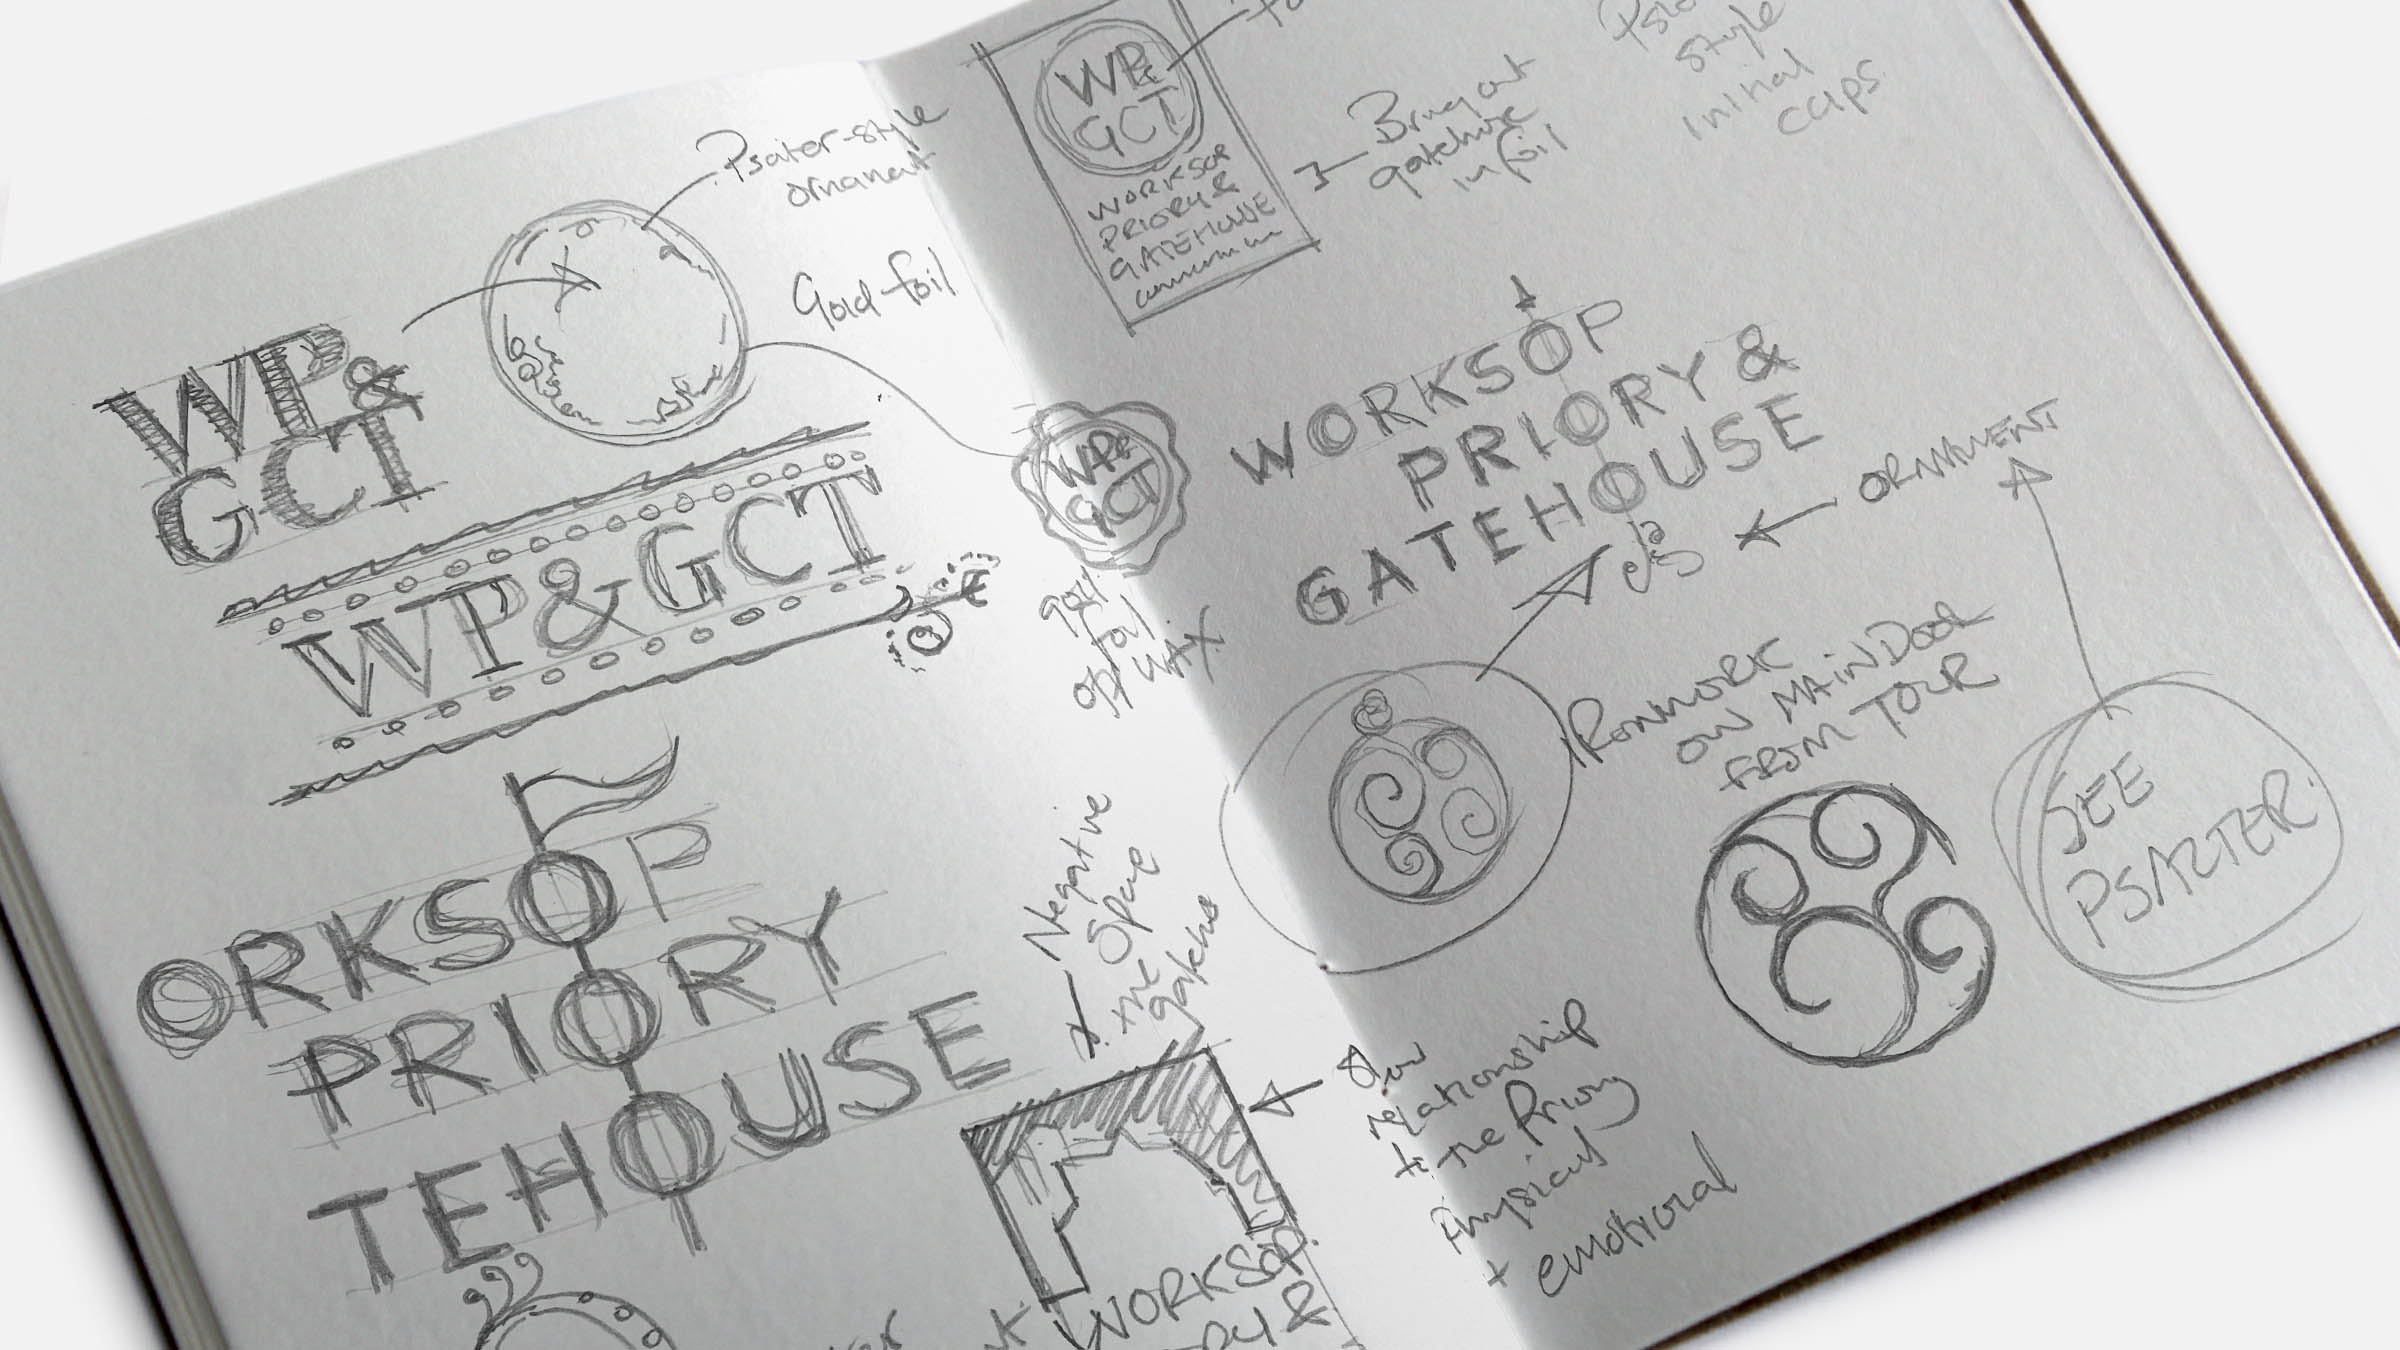 Sketched ideas for Worksop Priory & Gatehouse Community Trust identity logo design